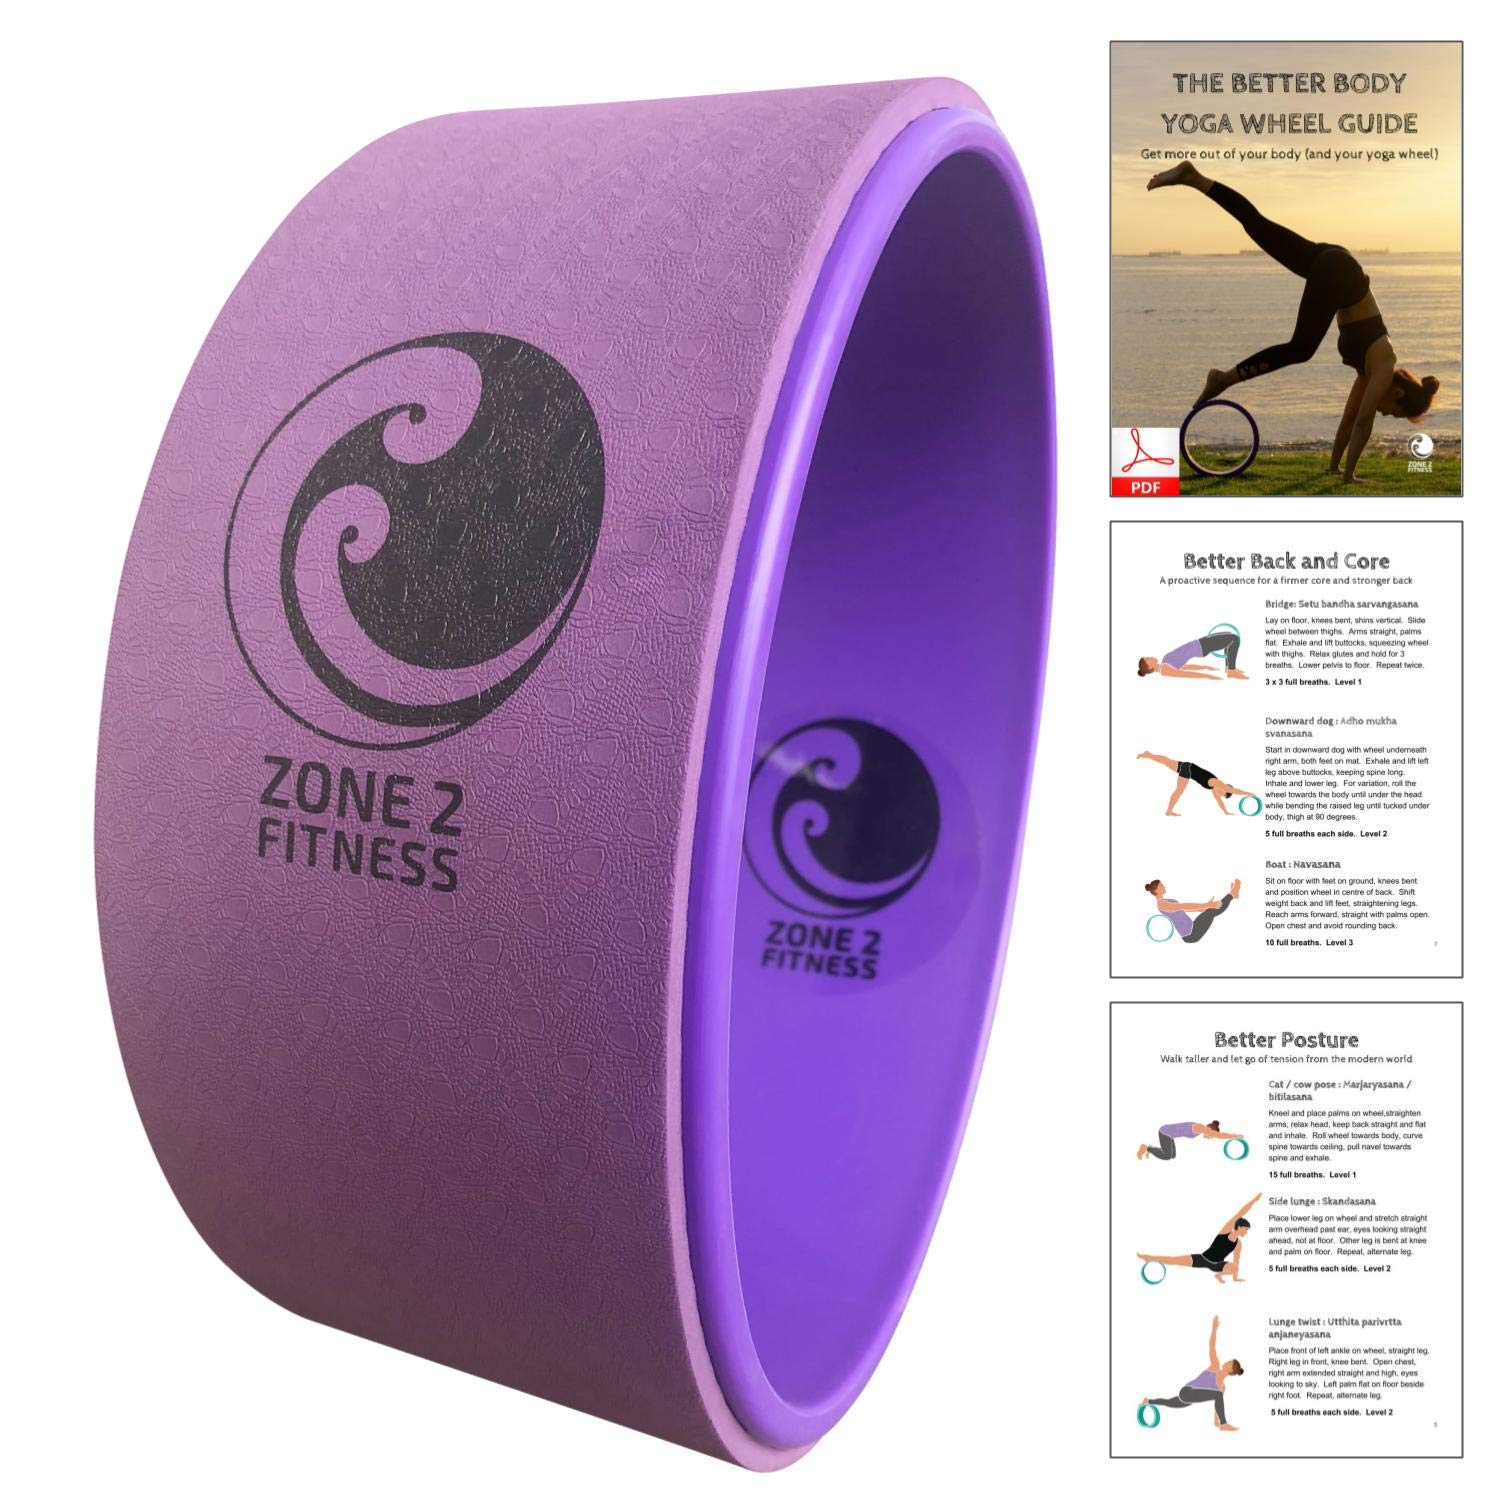 ZONE 2 FITNESS Yoga Wheel 13'' Purple - Bonus Free 30 Pose Guide by Yoga Instructor - Stretching, Flexibility, Back and Core, Posture, Strength - 20% More Padding, Comfortable, Perfect Yoga Accessory